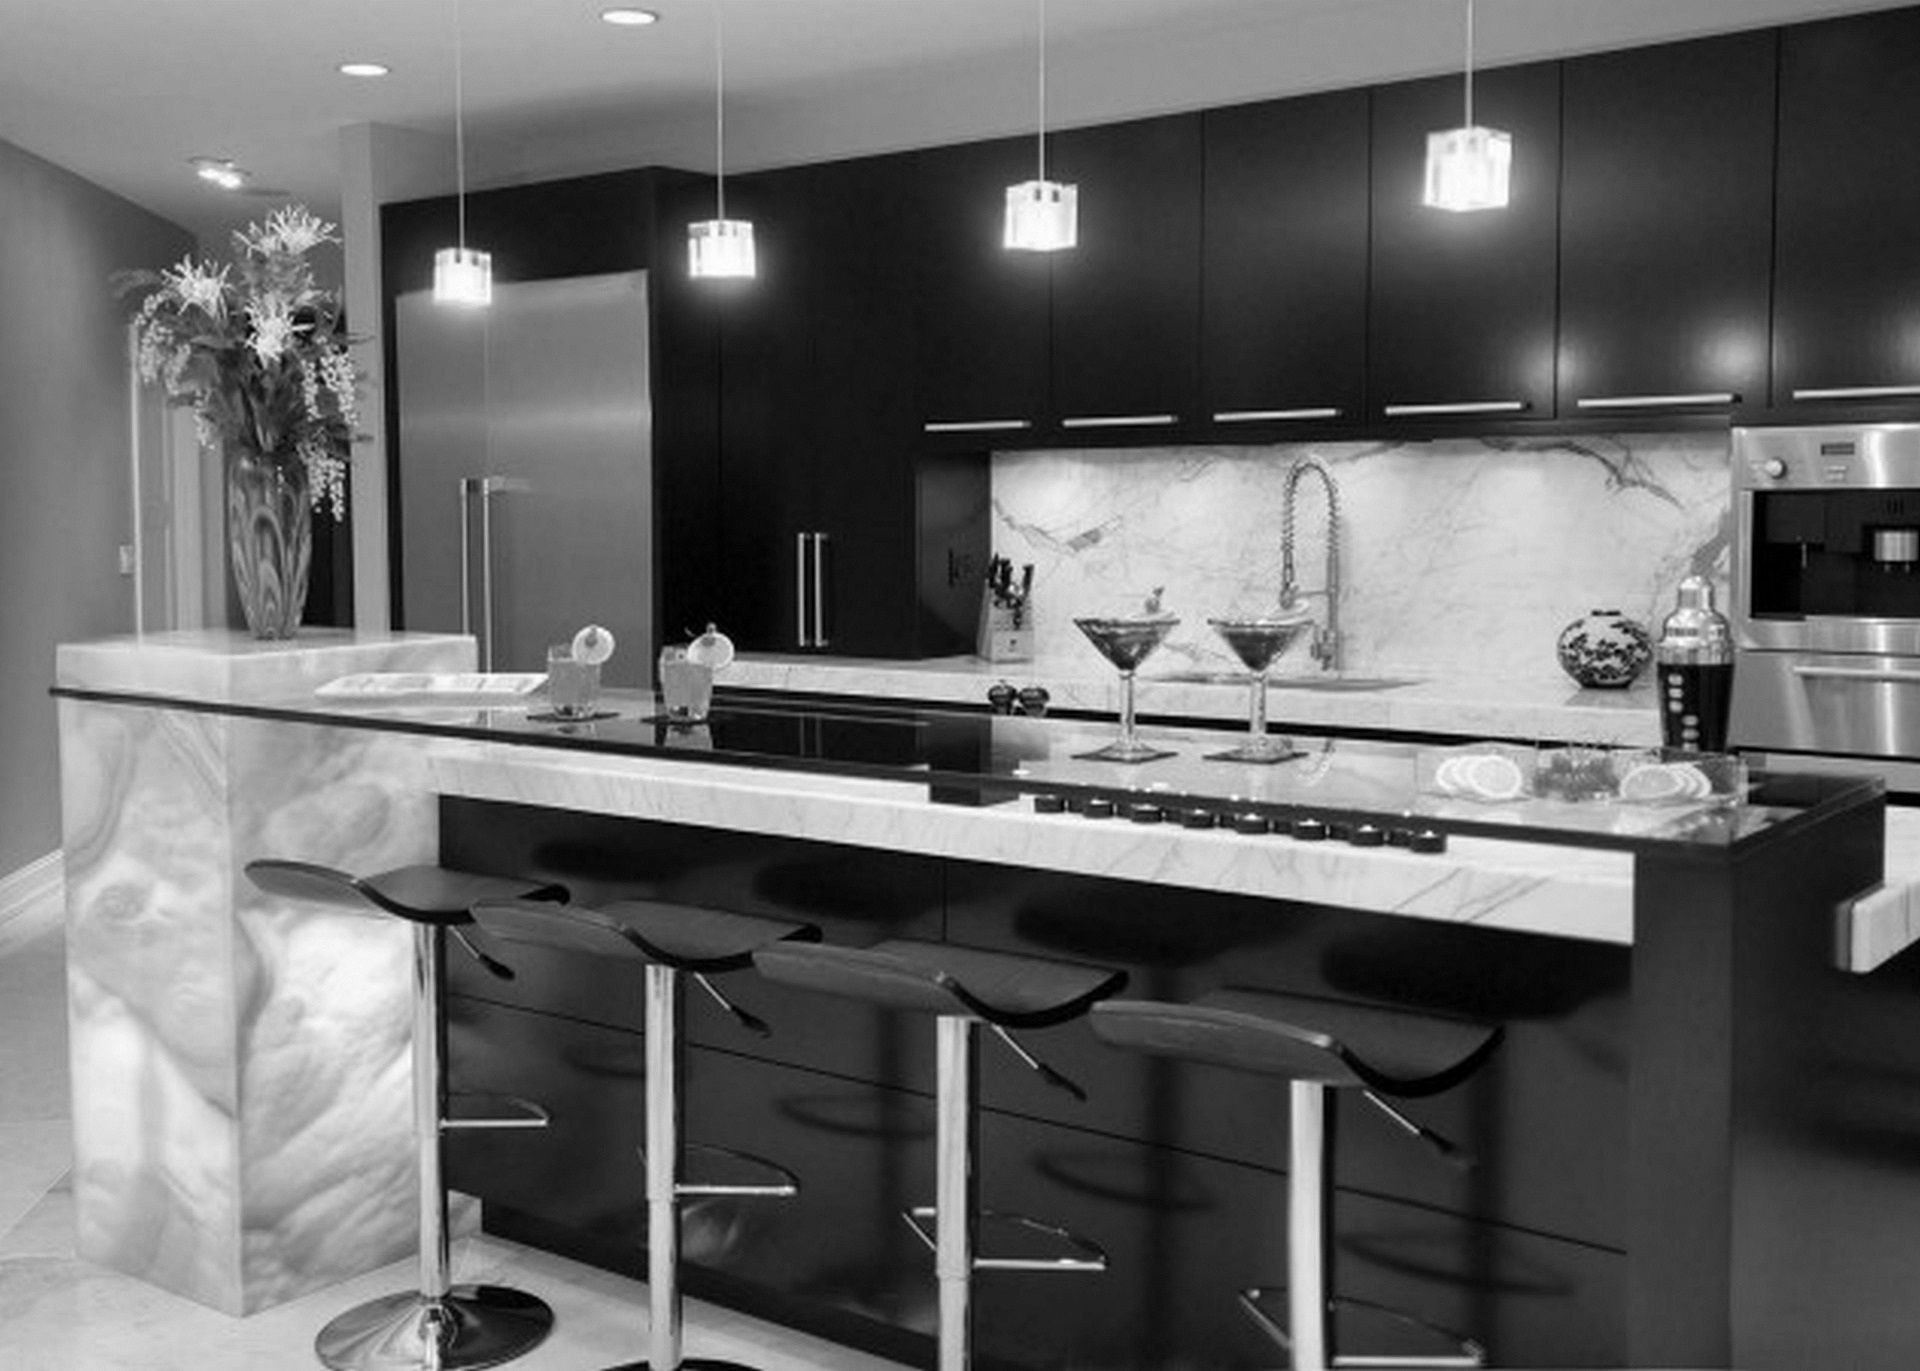 Grey Marble Top and Glass Bar Completing Dark Island in Sensational Black and White Kitchen